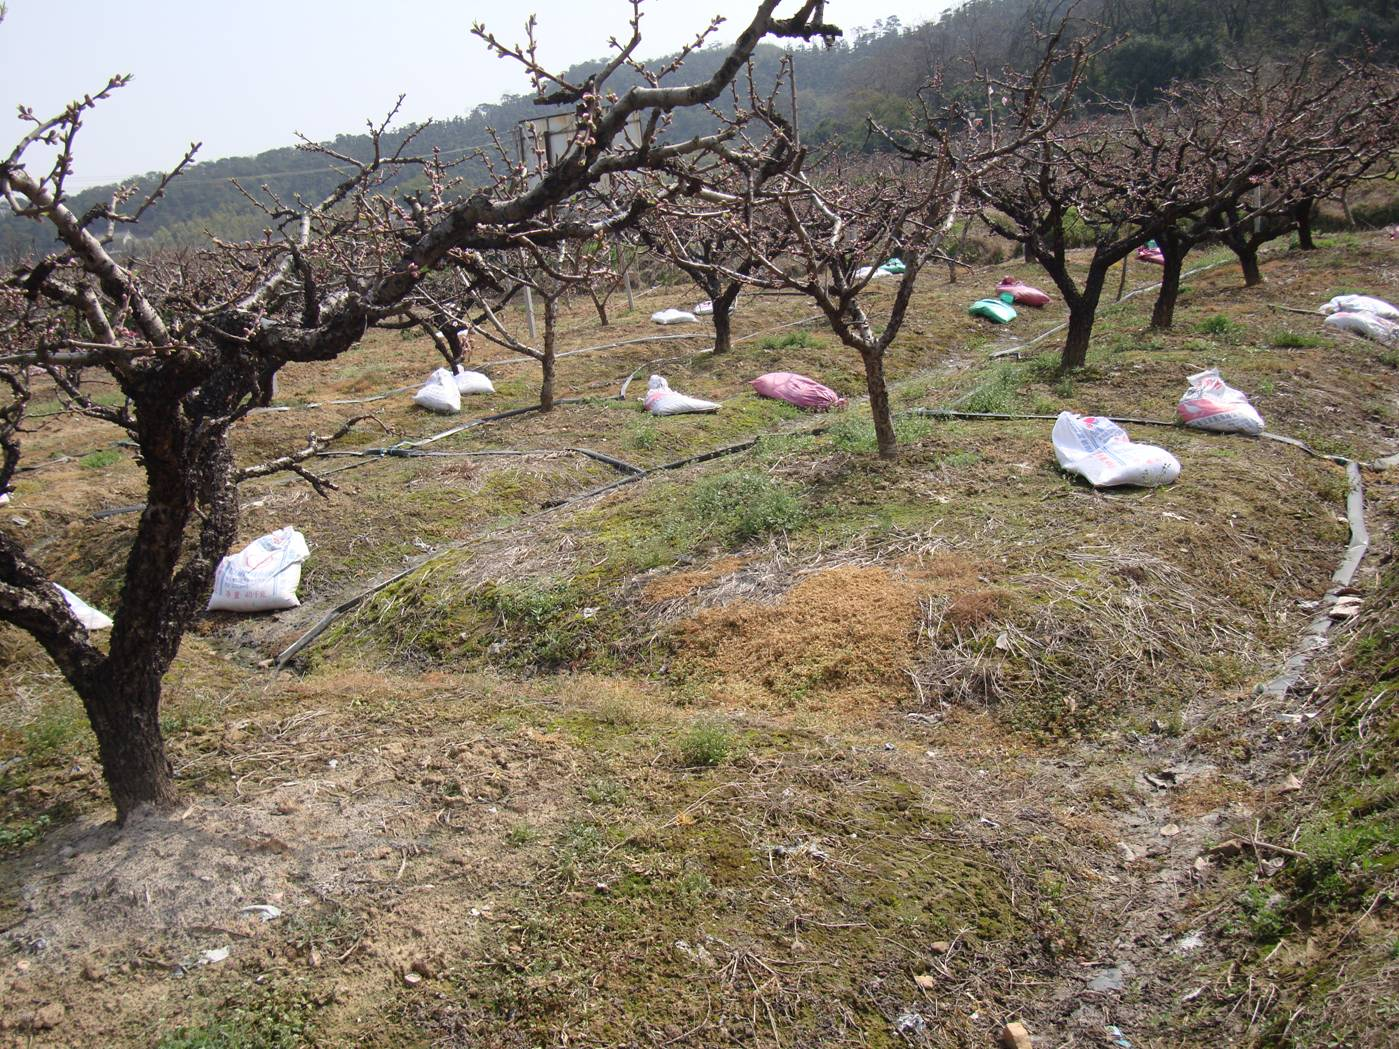 Picture:  Bags of fertilizer laid out under the peach trees.  Yang Shan, Wuxi, China